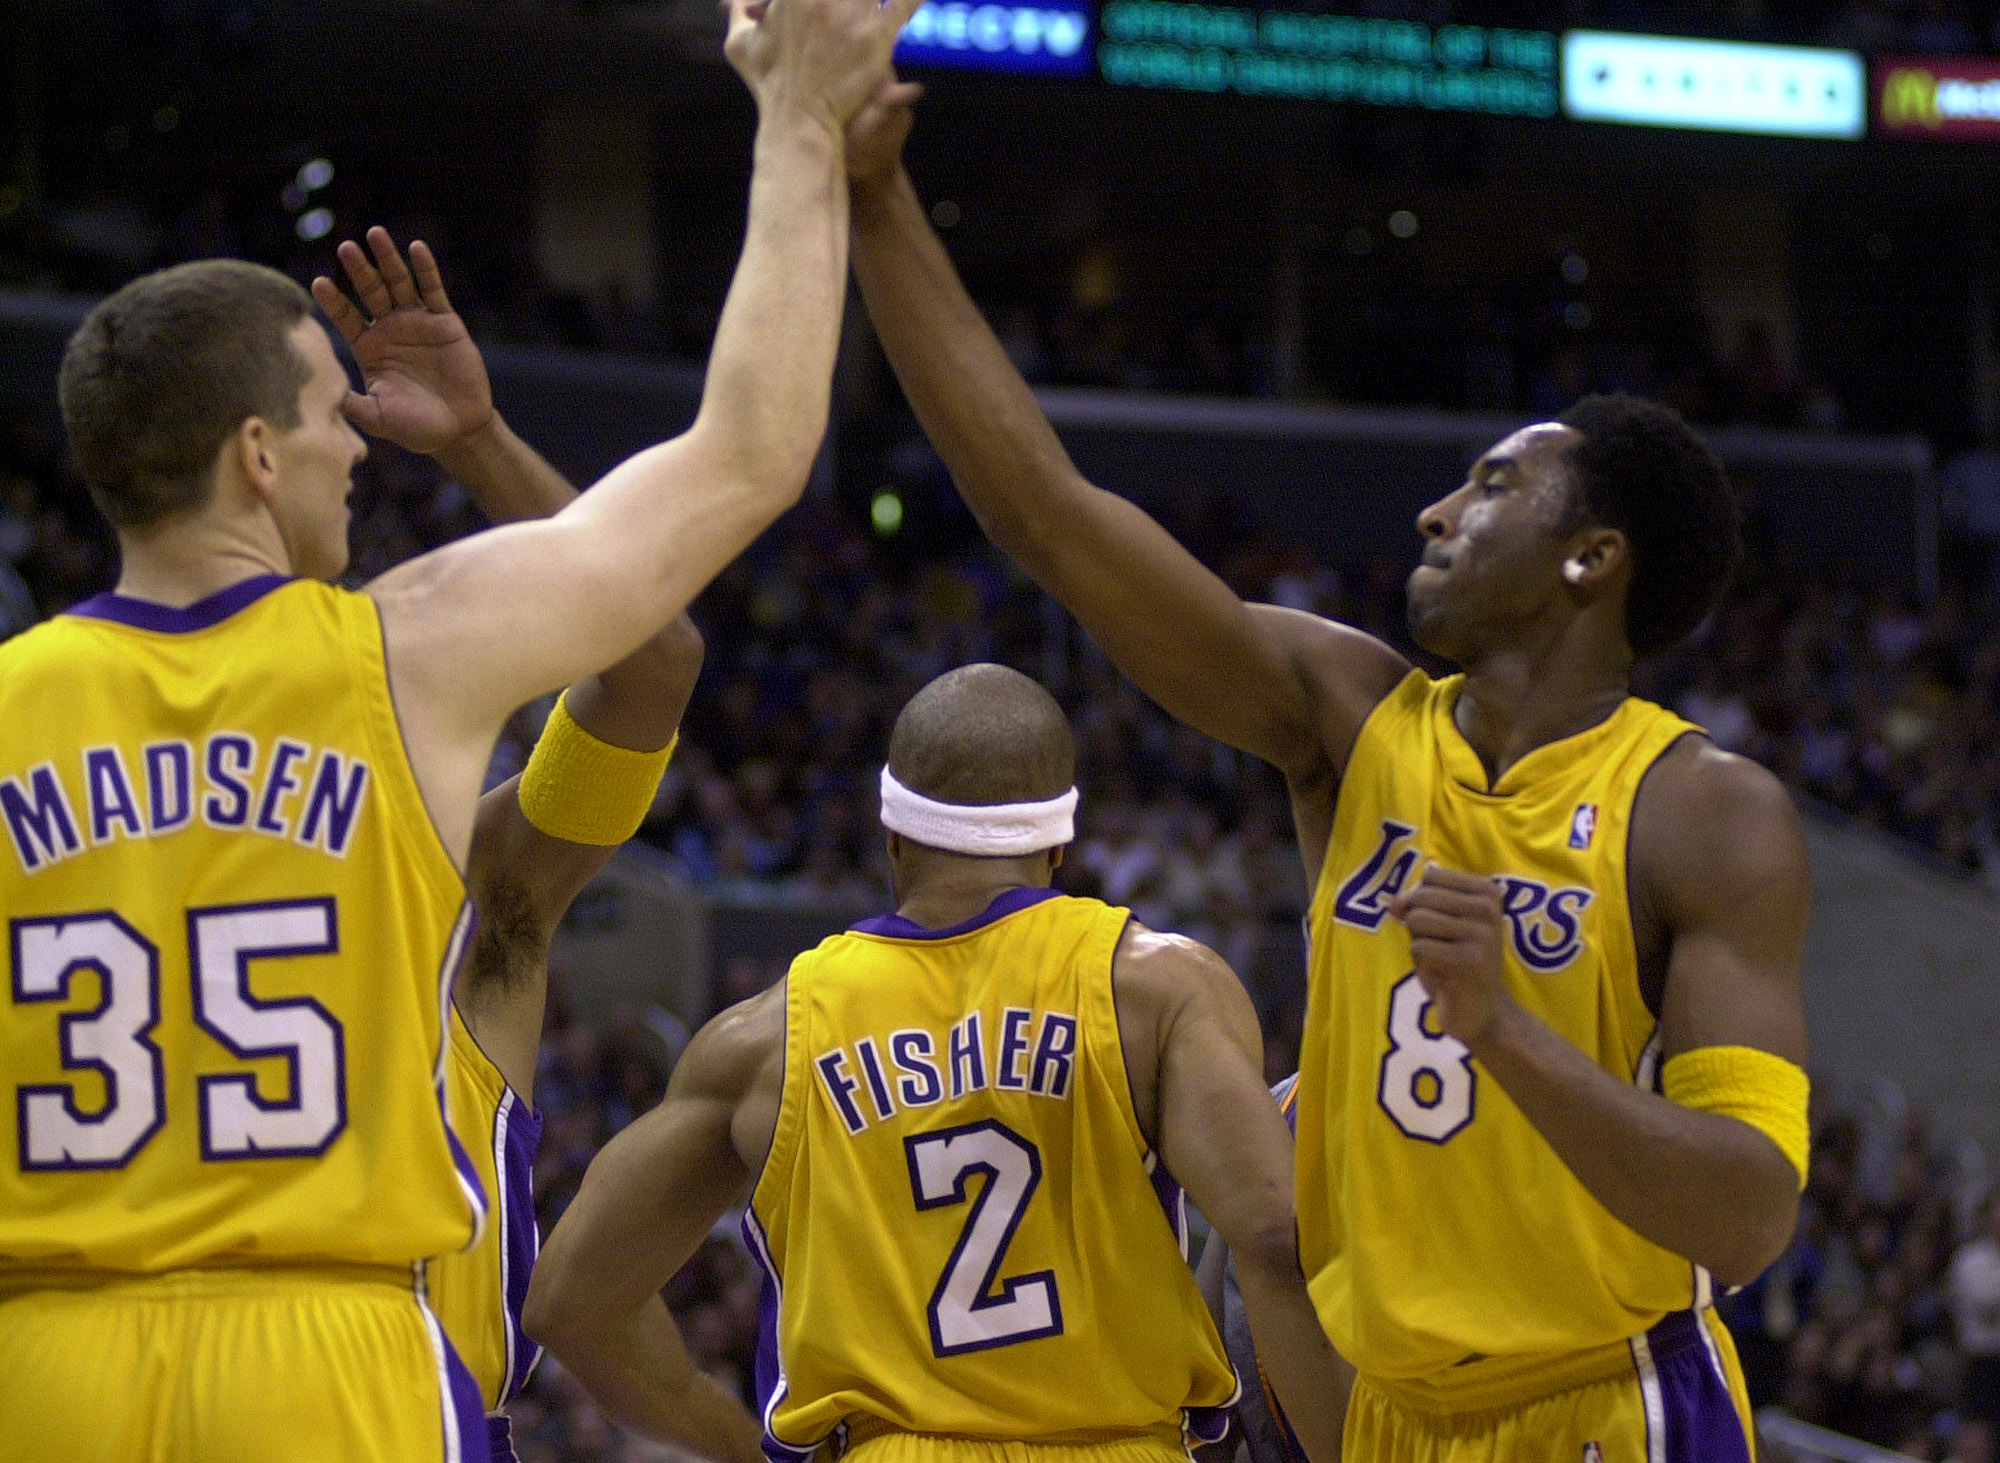 Mark Madsen congratulates Kobe Bryant after Bryant scored in a 2001 LA Lakers game. Madsen and Bryant were teammates for three years.